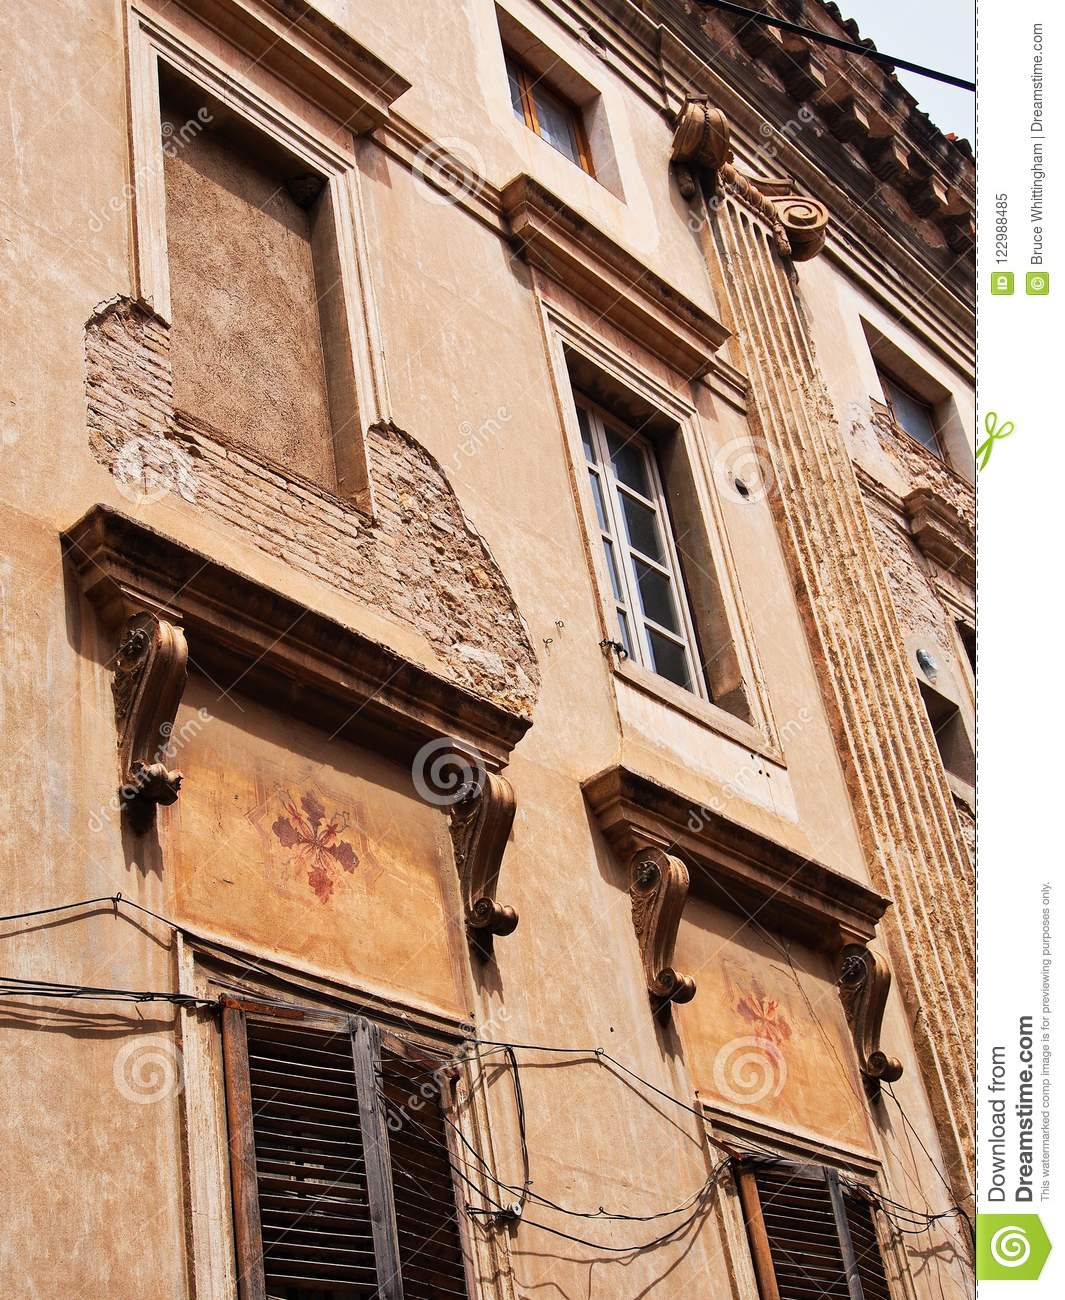 Old Brick Apartment Building: Historic Brick And Stucco Apartment Building, Figueres